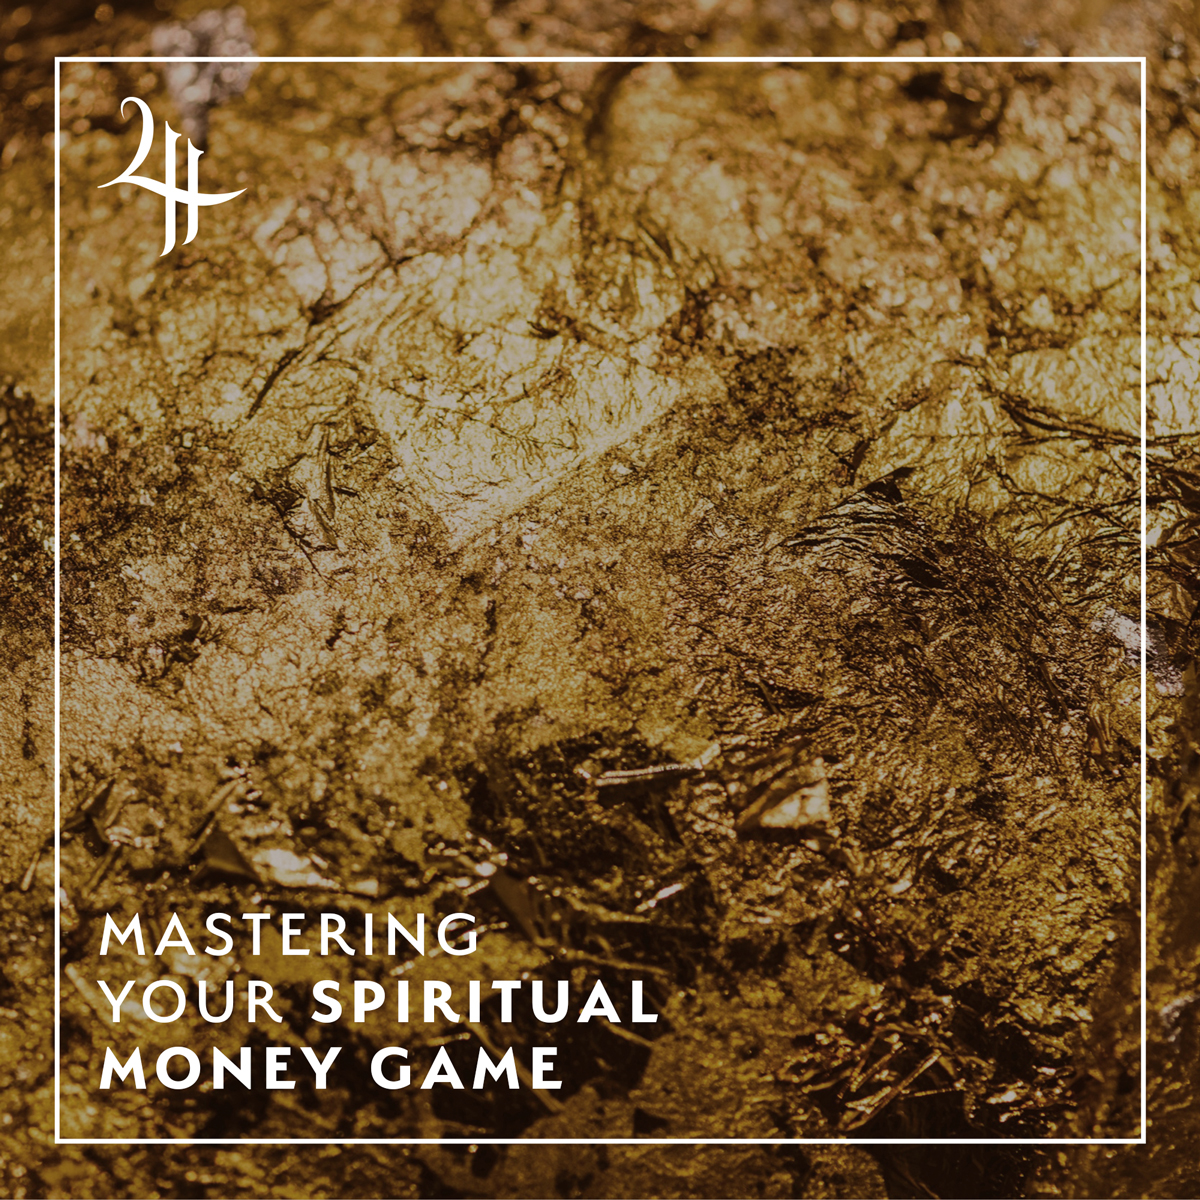 Mastering Your Spiritual Money Game (Course)